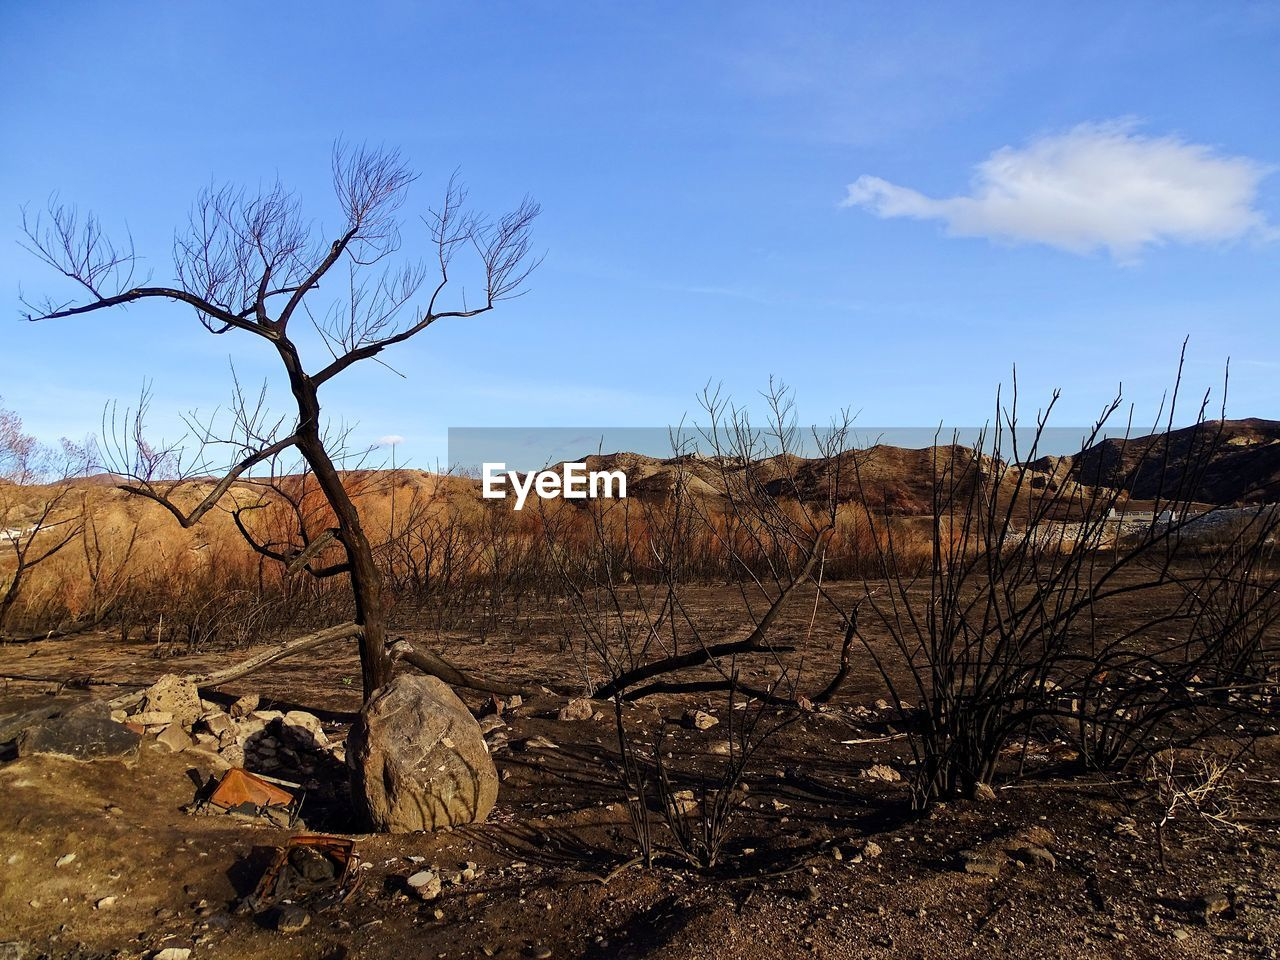 bare tree, tranquil scene, landscape, tranquility, nature, dead plant, beauty in nature, scenics, outdoors, arid climate, no people, day, dead tree, sky, tree, branch, dried plant